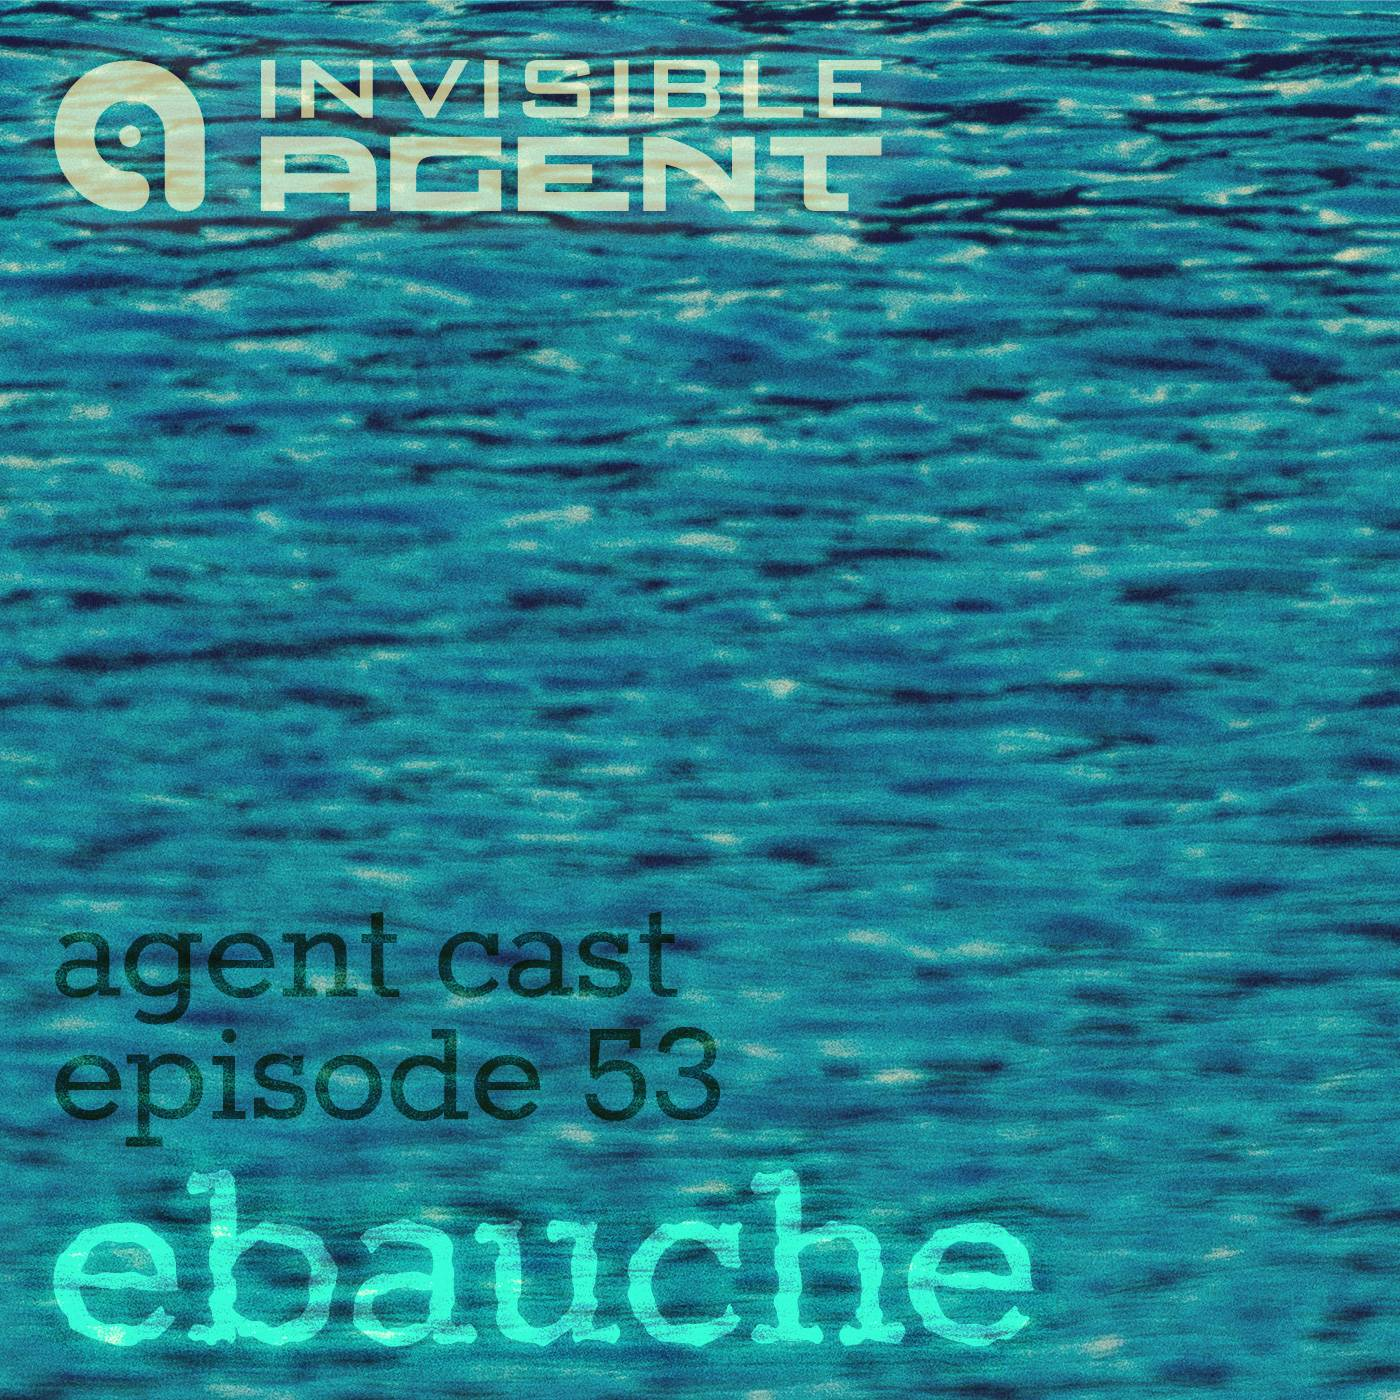 ebauche agentcast 53 podcast cover artwork